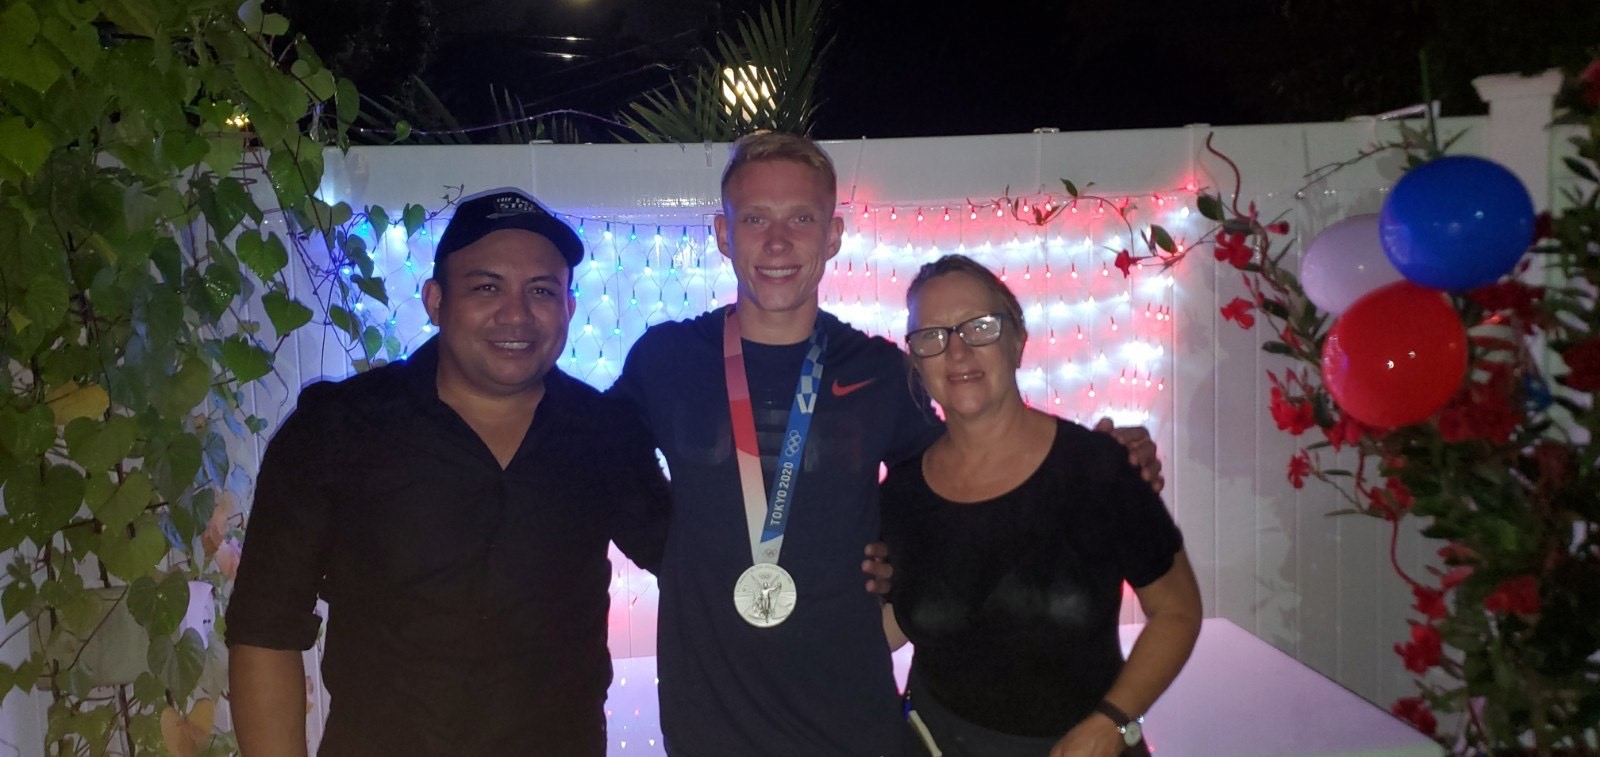 Owners with Andrew Capobianco, USA silver medalist in diving